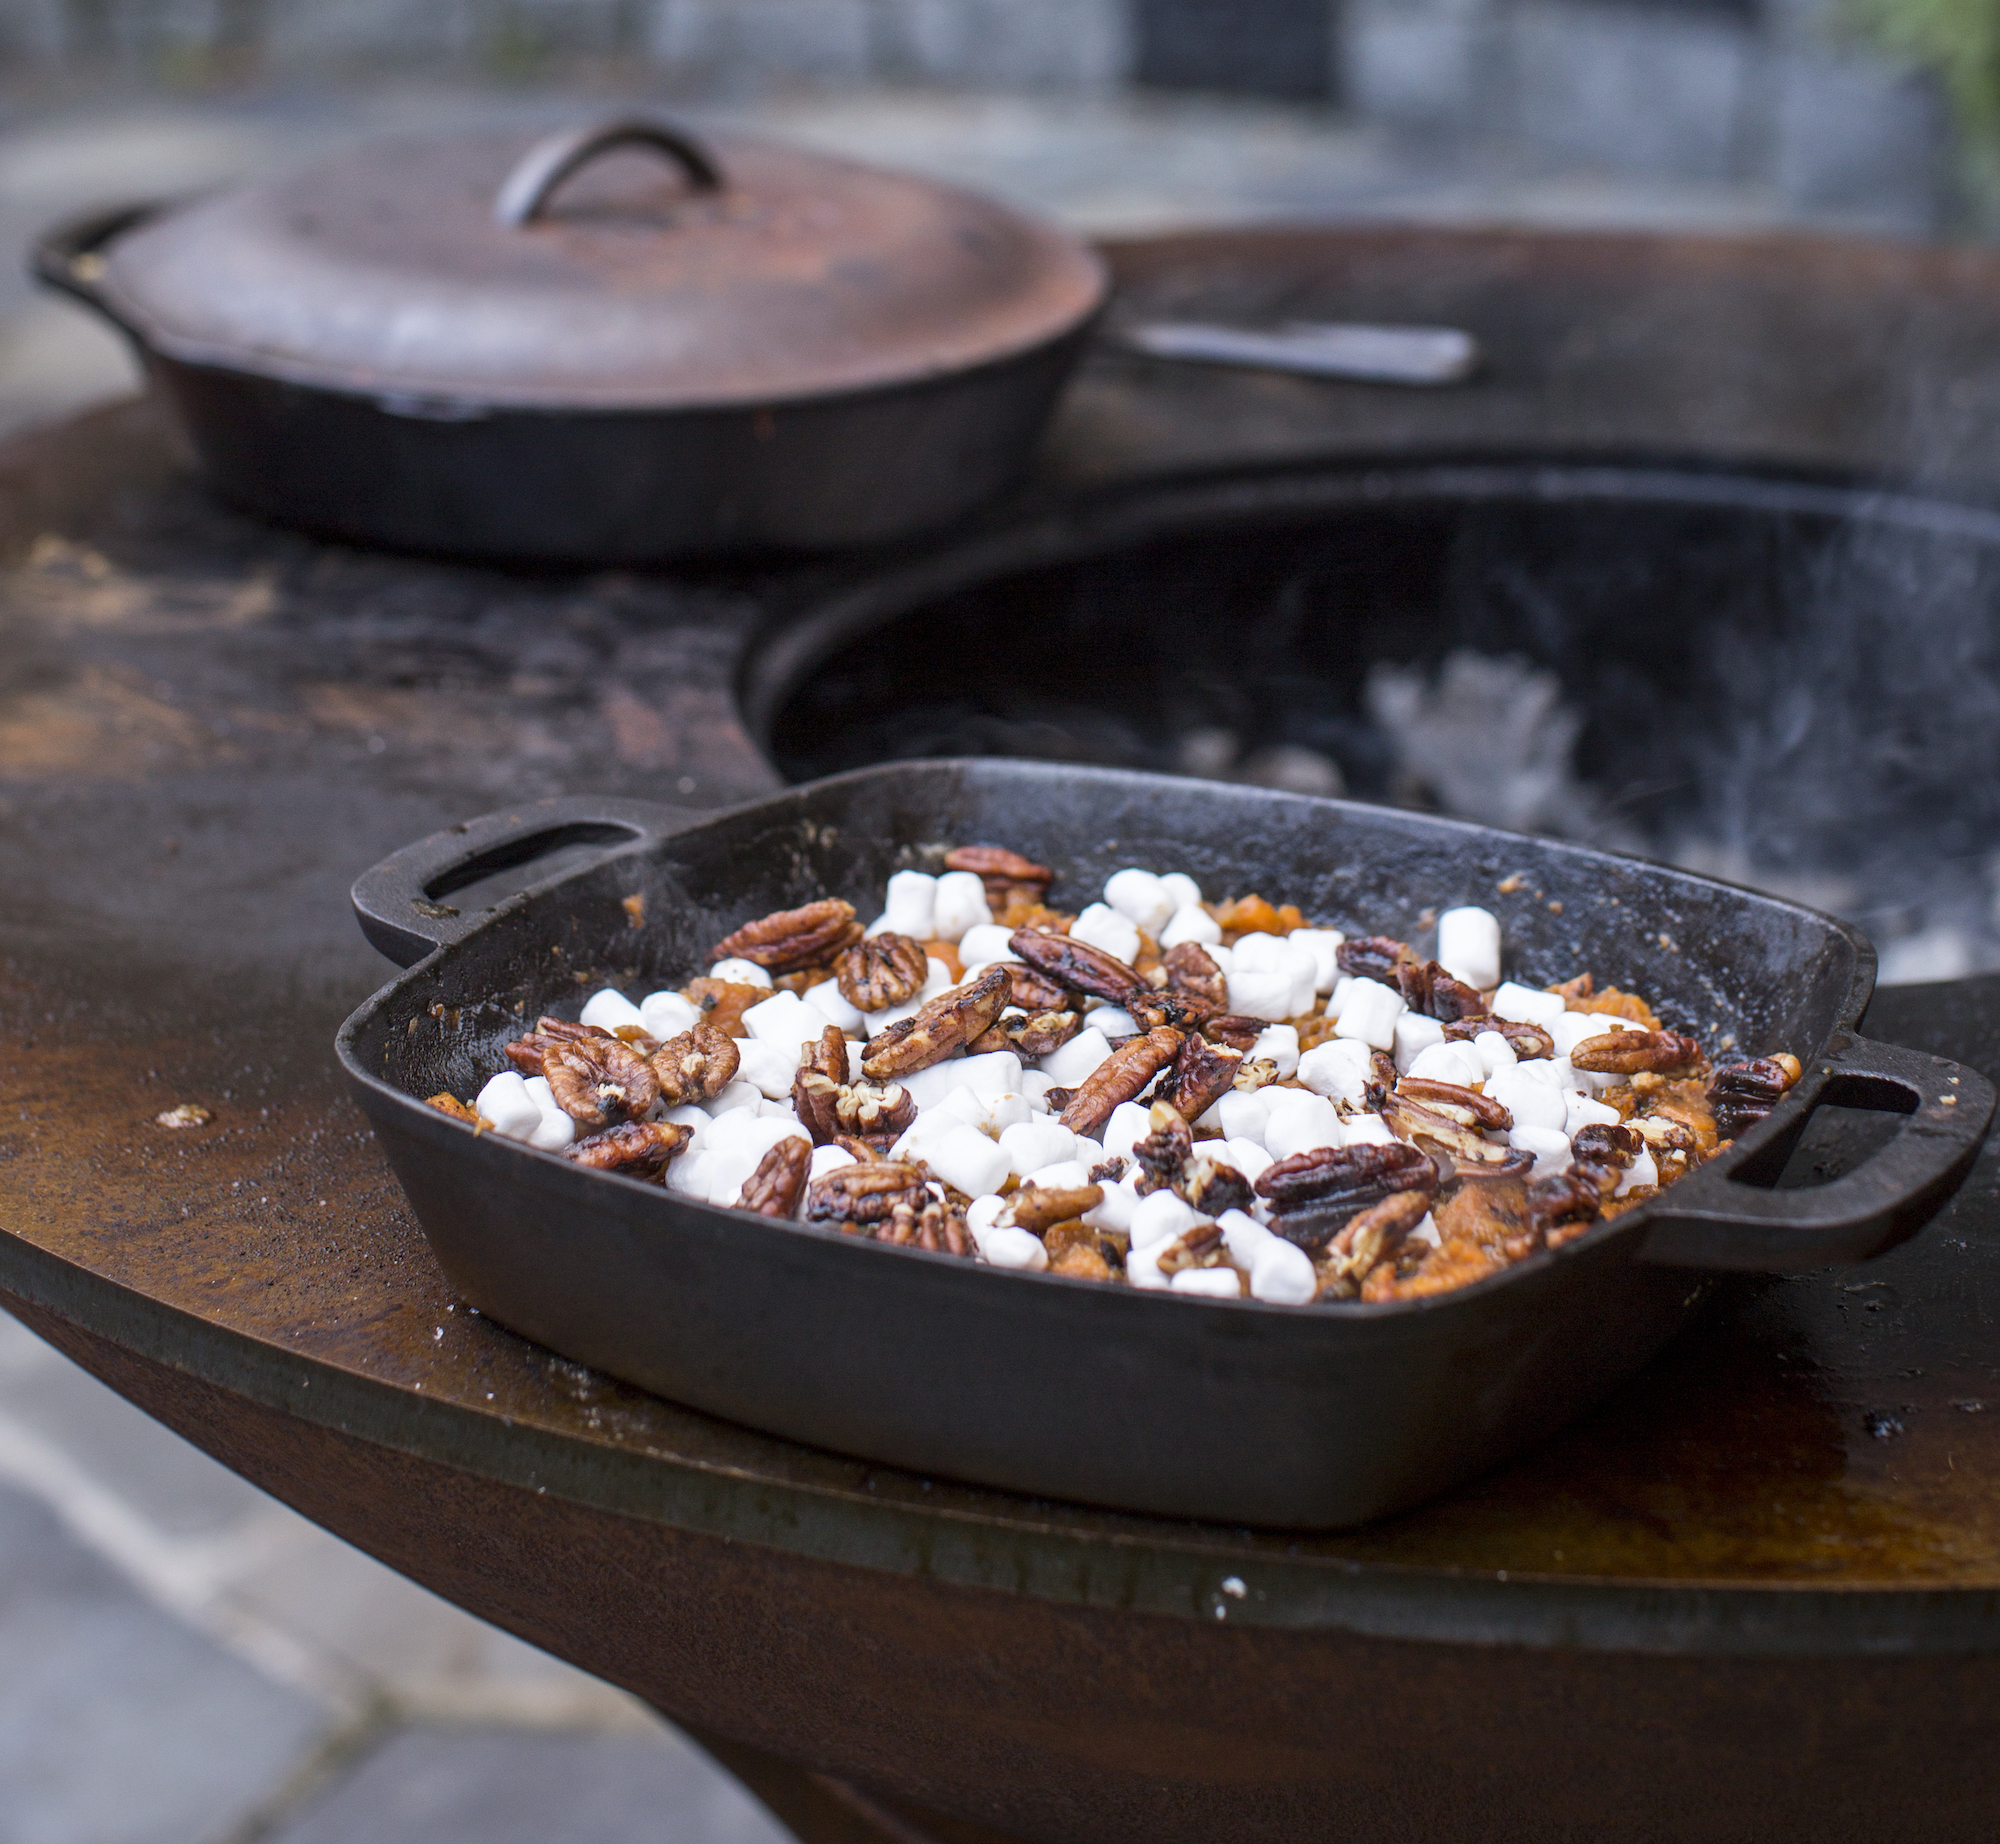 Grilled Yam Smash with Candied Pecans and Marshmallows